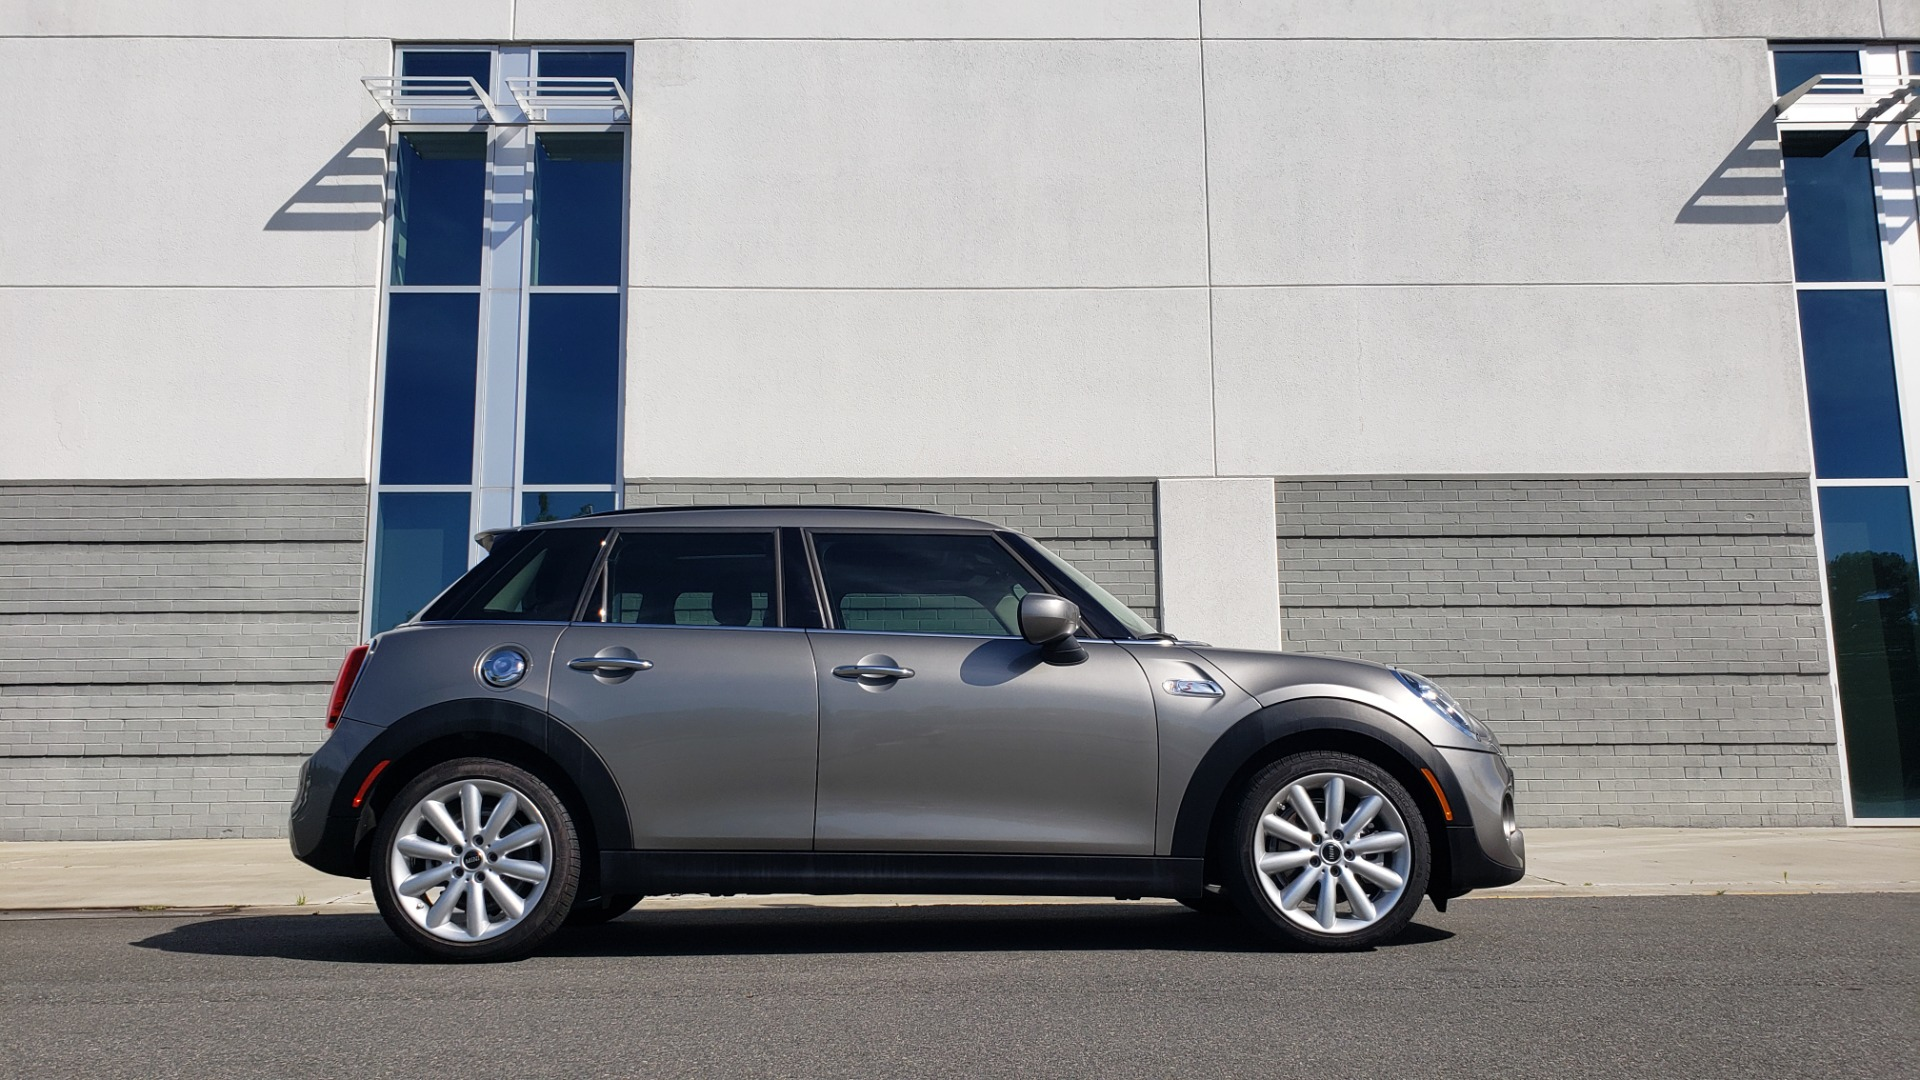 Used 2020 MINI HARDTOP 4 DOOR COOPER S / NAV / SUNROOF / AUTO / H/K SND / REARVIEW for sale $28,495 at Formula Imports in Charlotte NC 28227 8